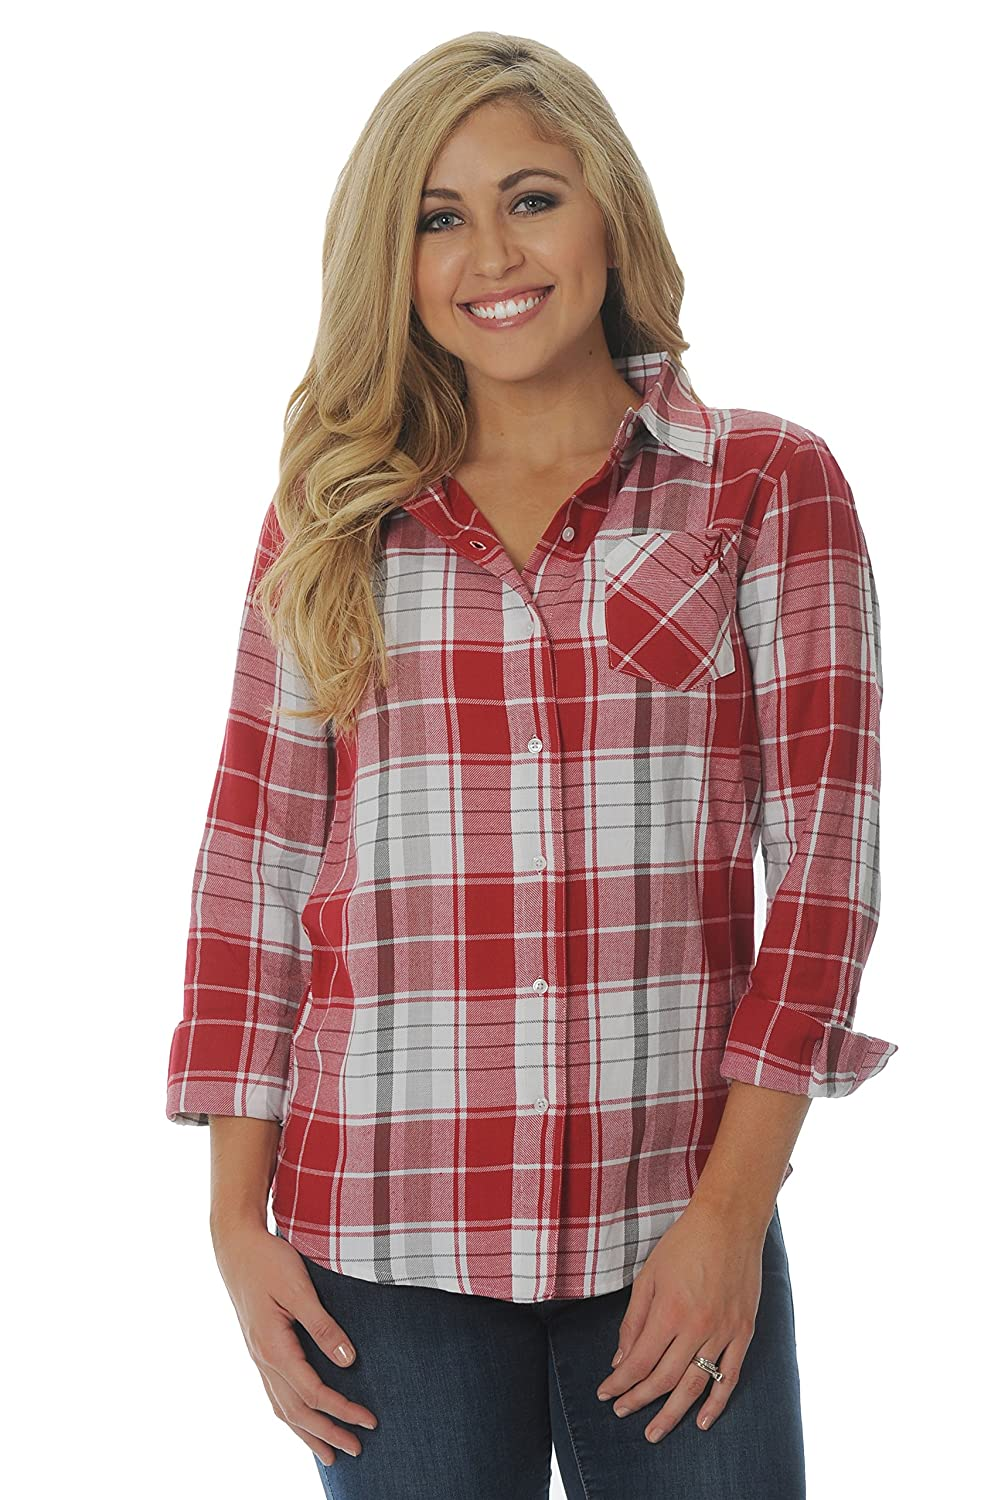 images of womens red and white plaid shirt best fashion